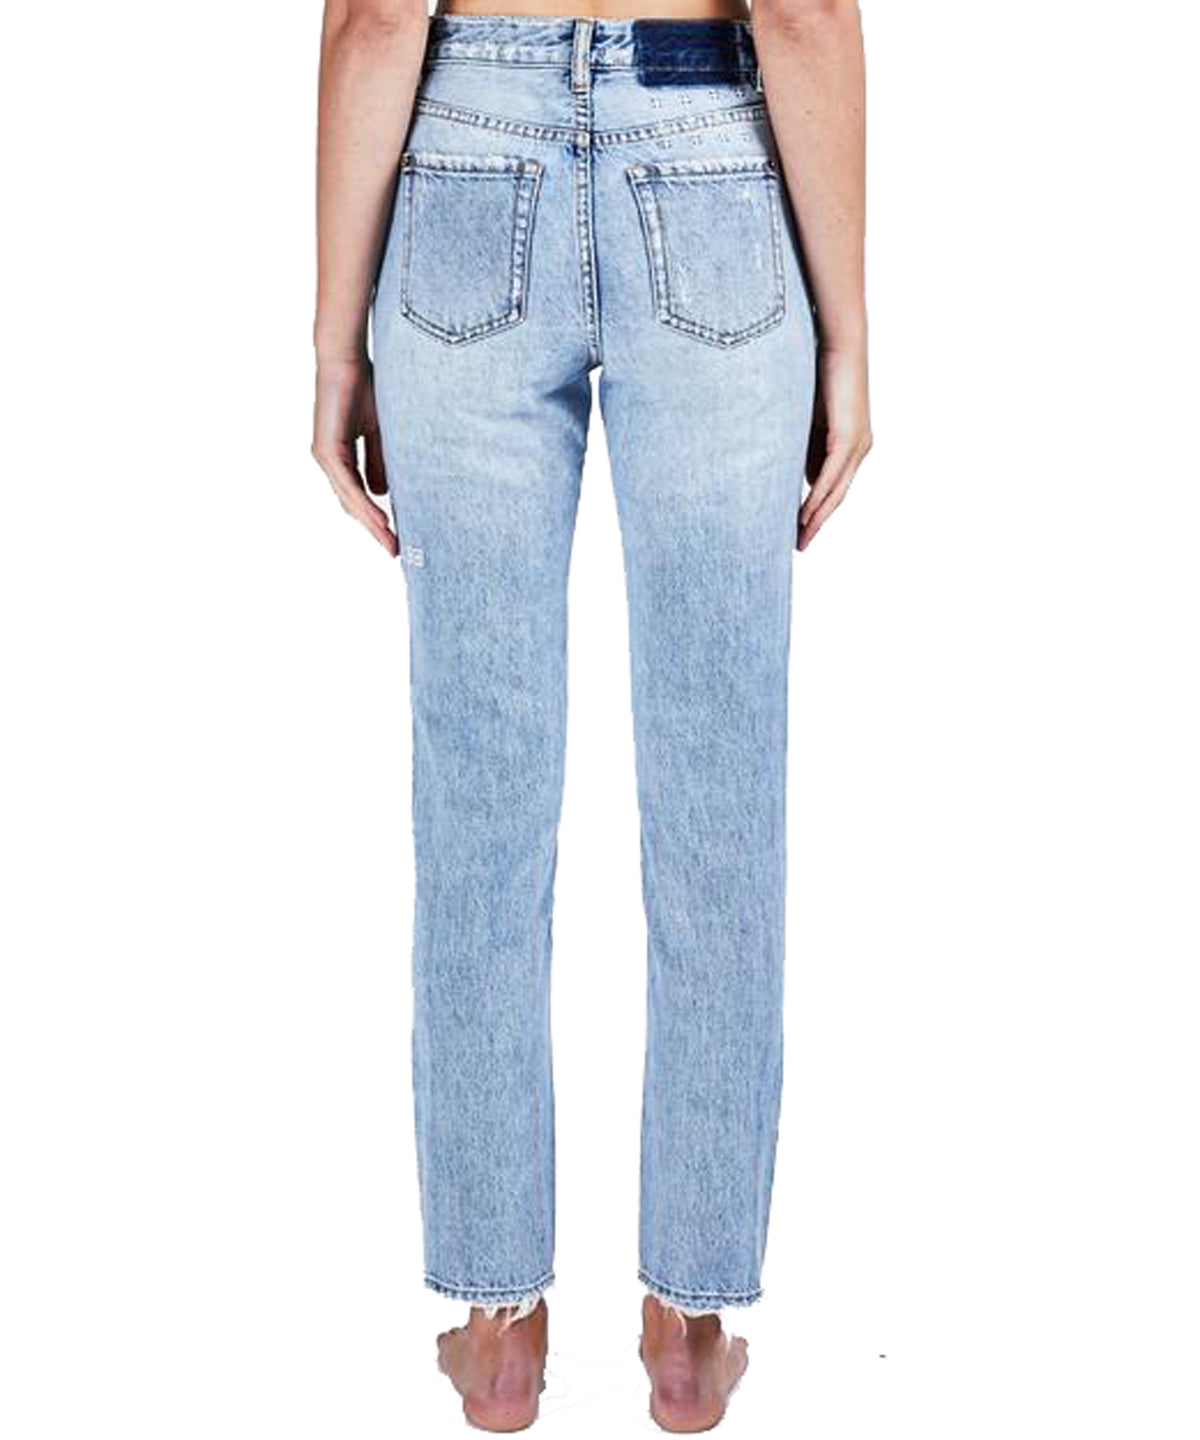 Ksubi Slim Pin Karma Denim baby blue